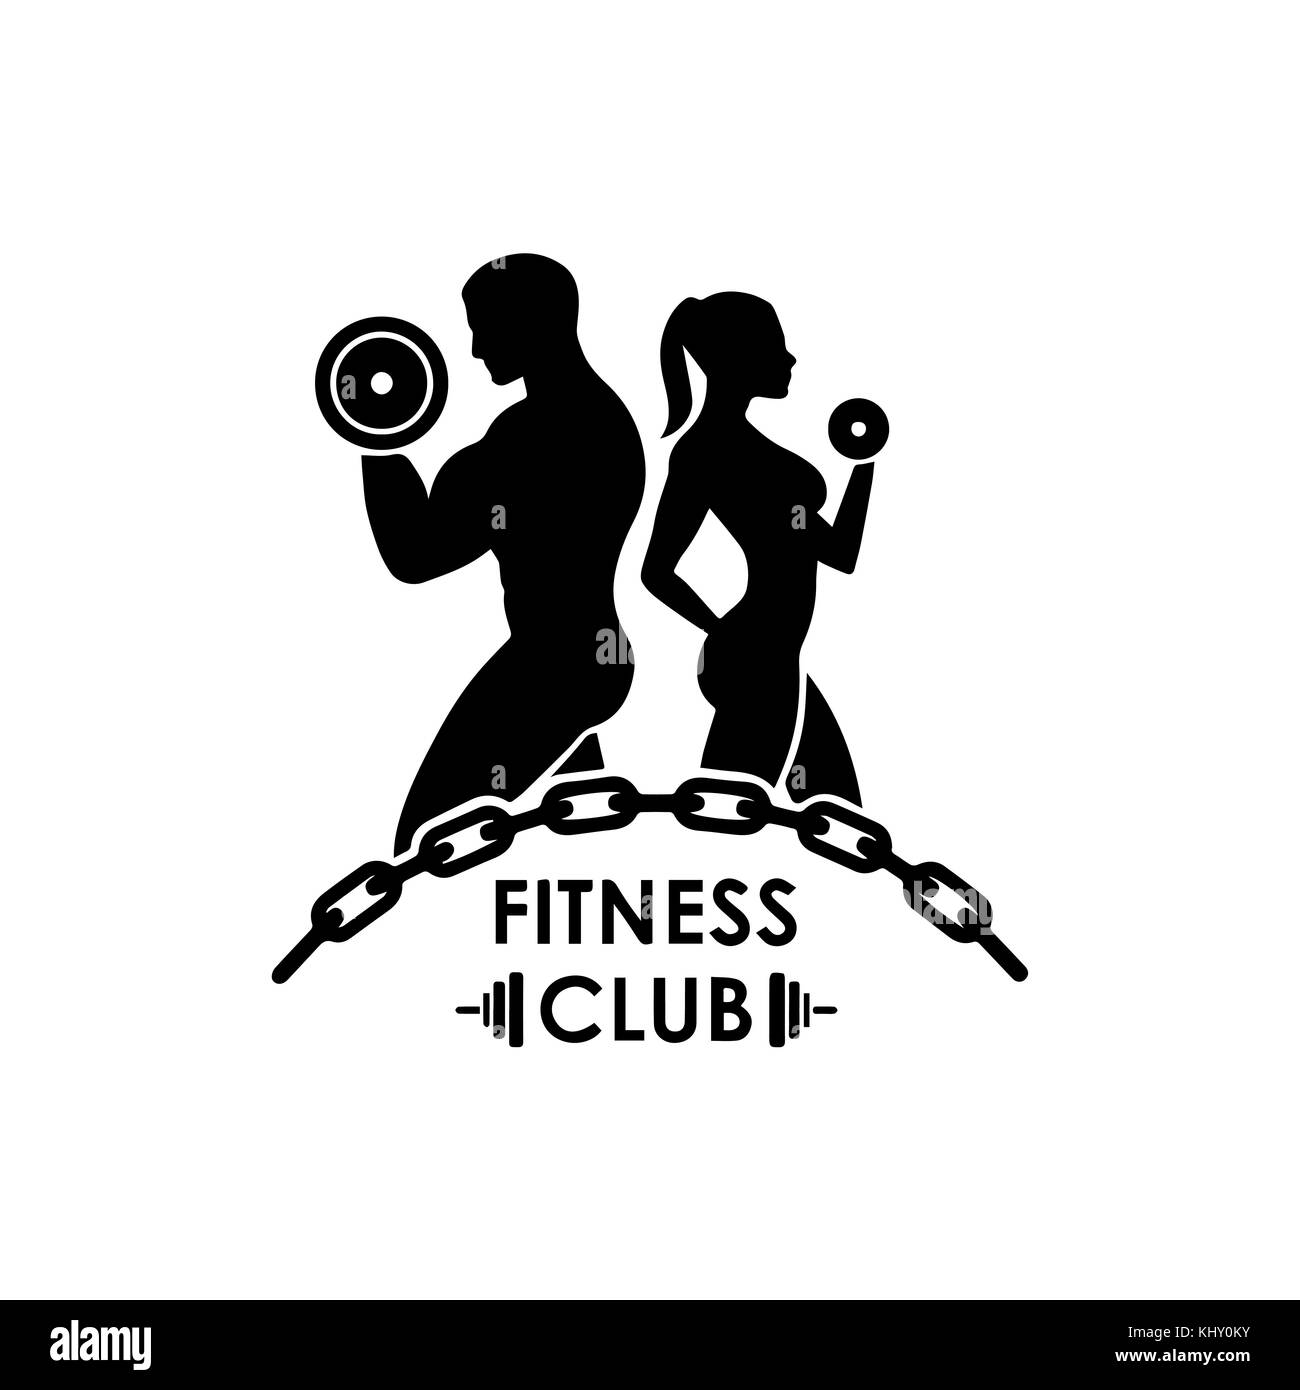 bodybuilding logo stock photos amp bodybuilding logo stock